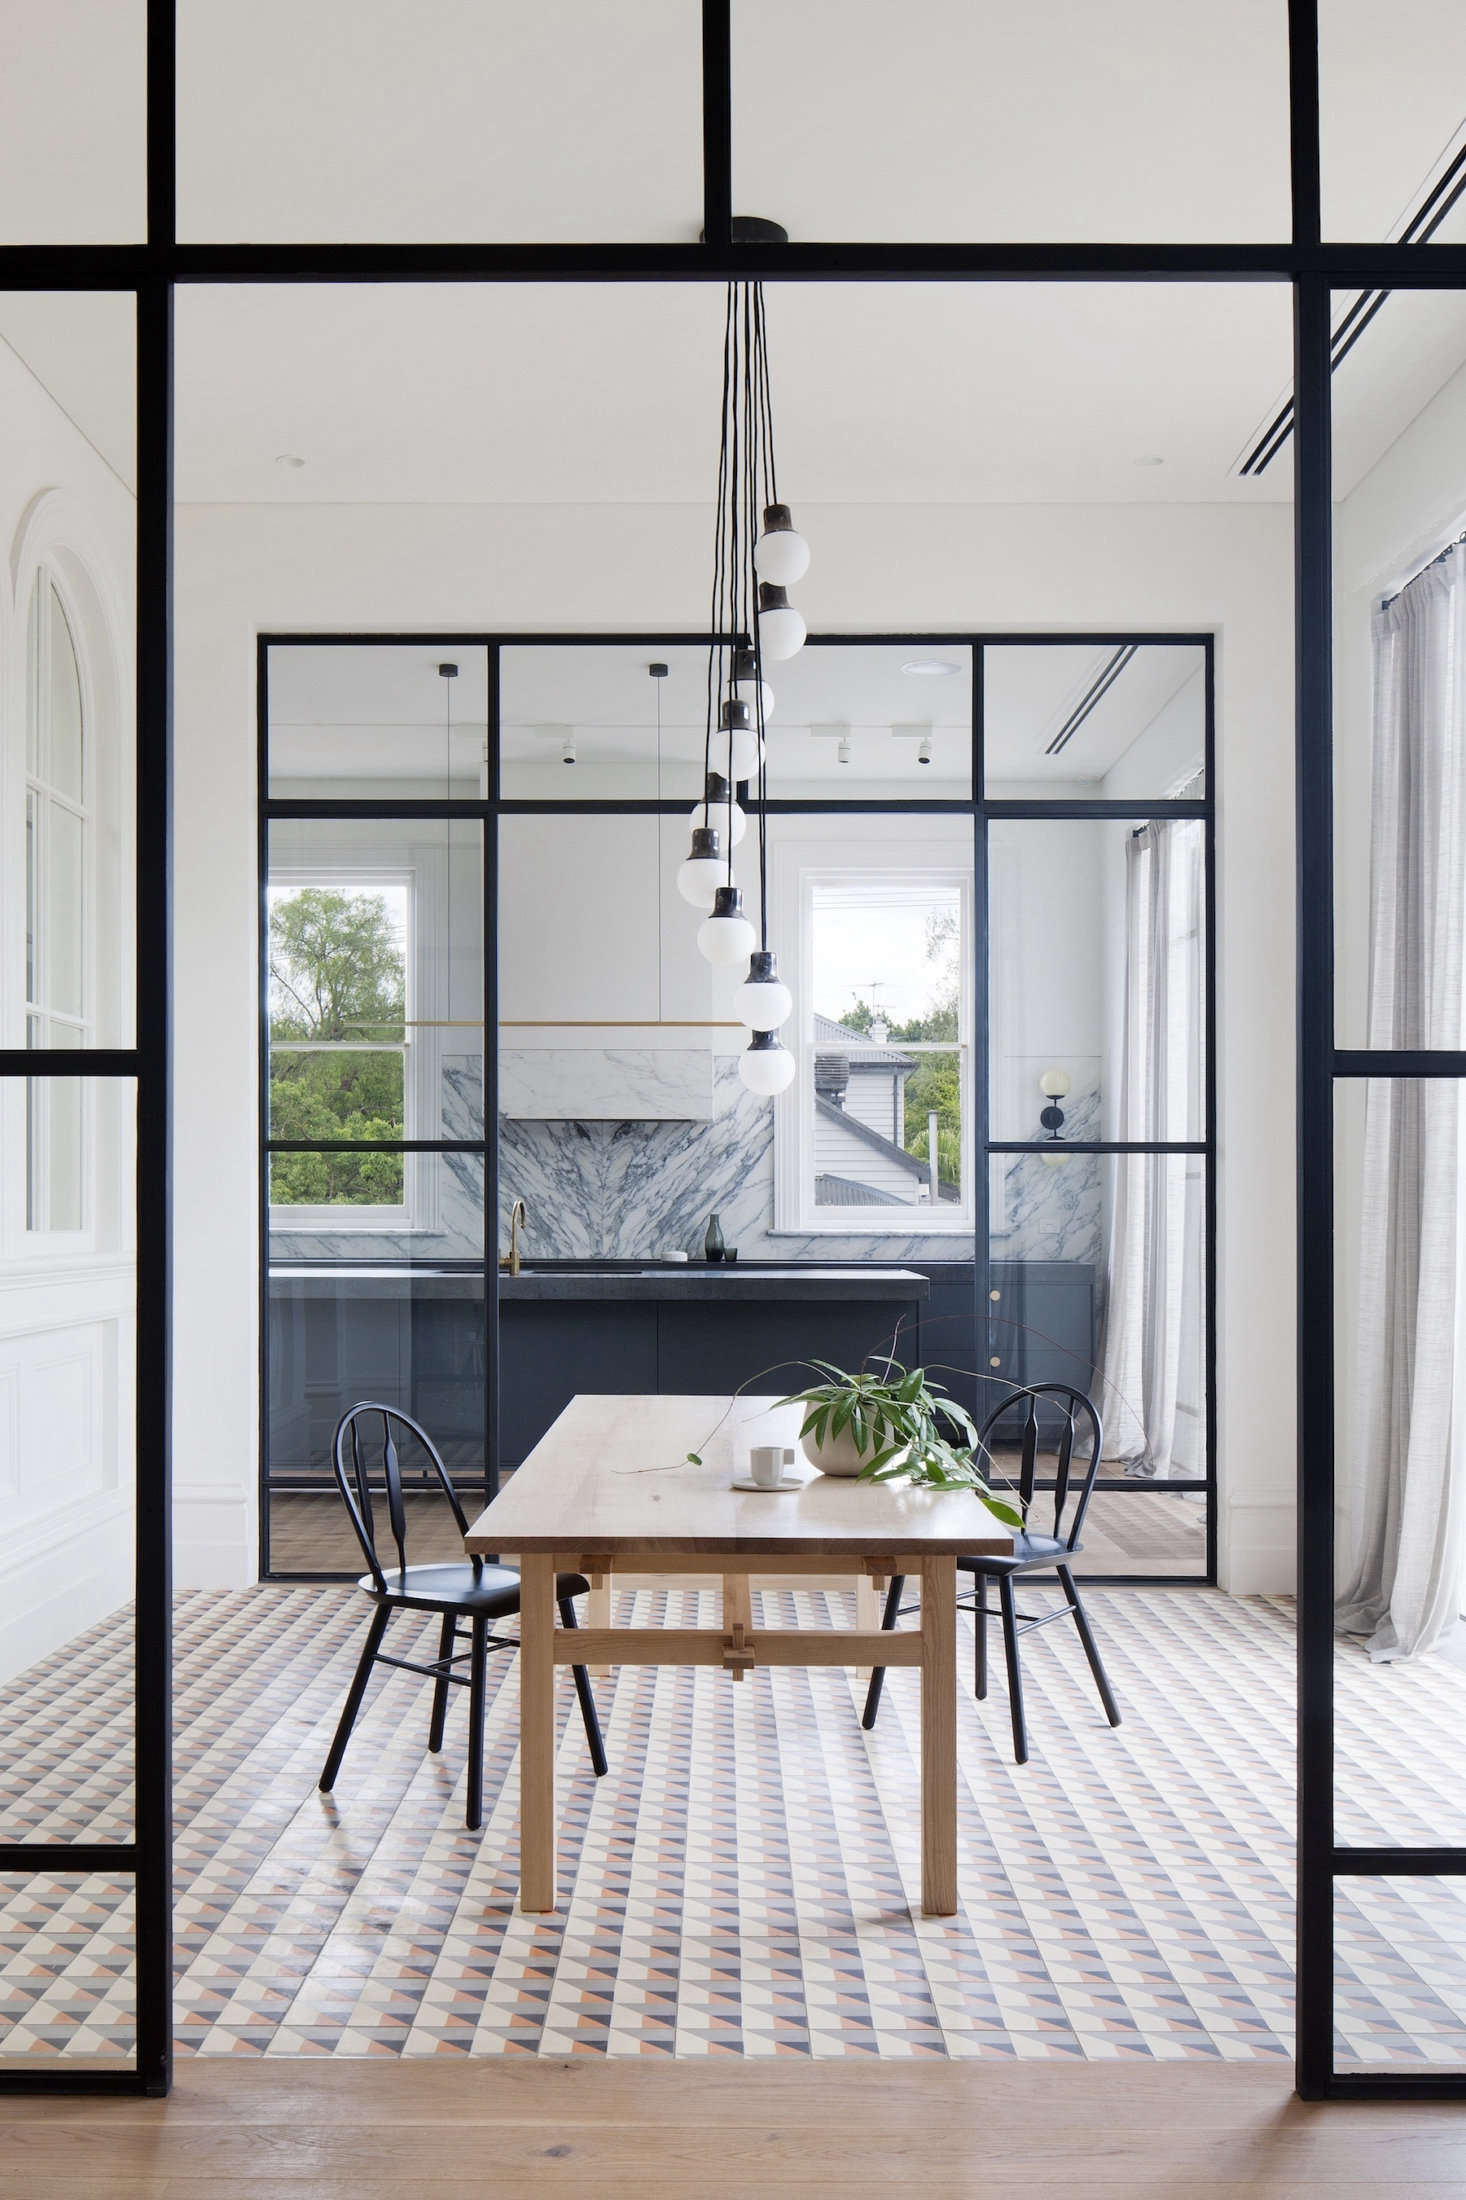 Charming Steel Framed Interior Walls Allow Natural Light To Filter Through The  Rooms. In The Dining